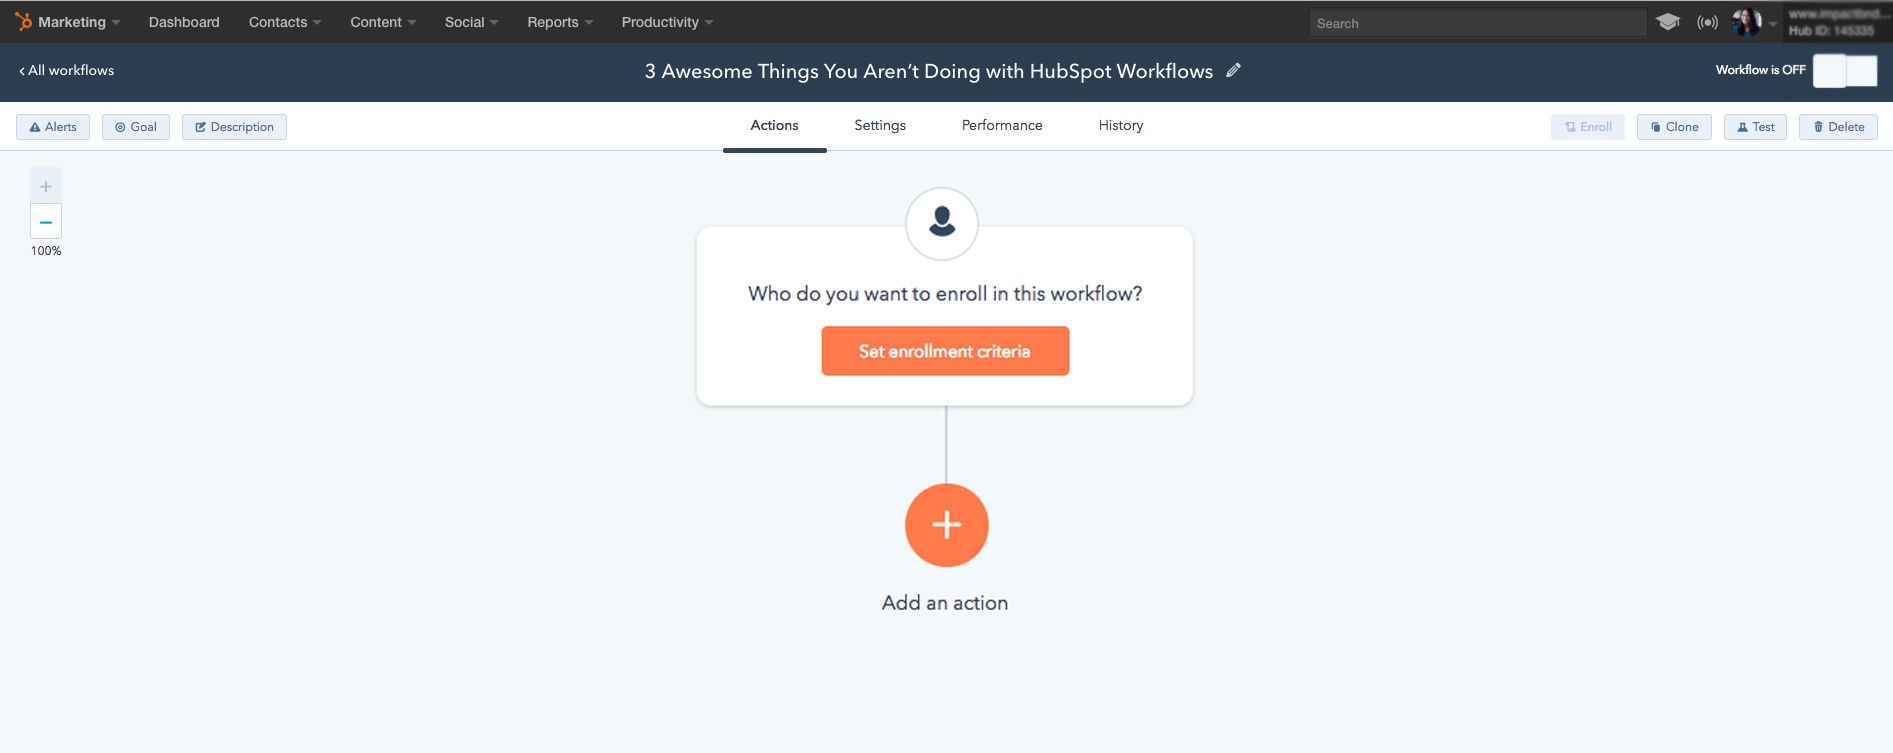 hubspot-workflows-tips